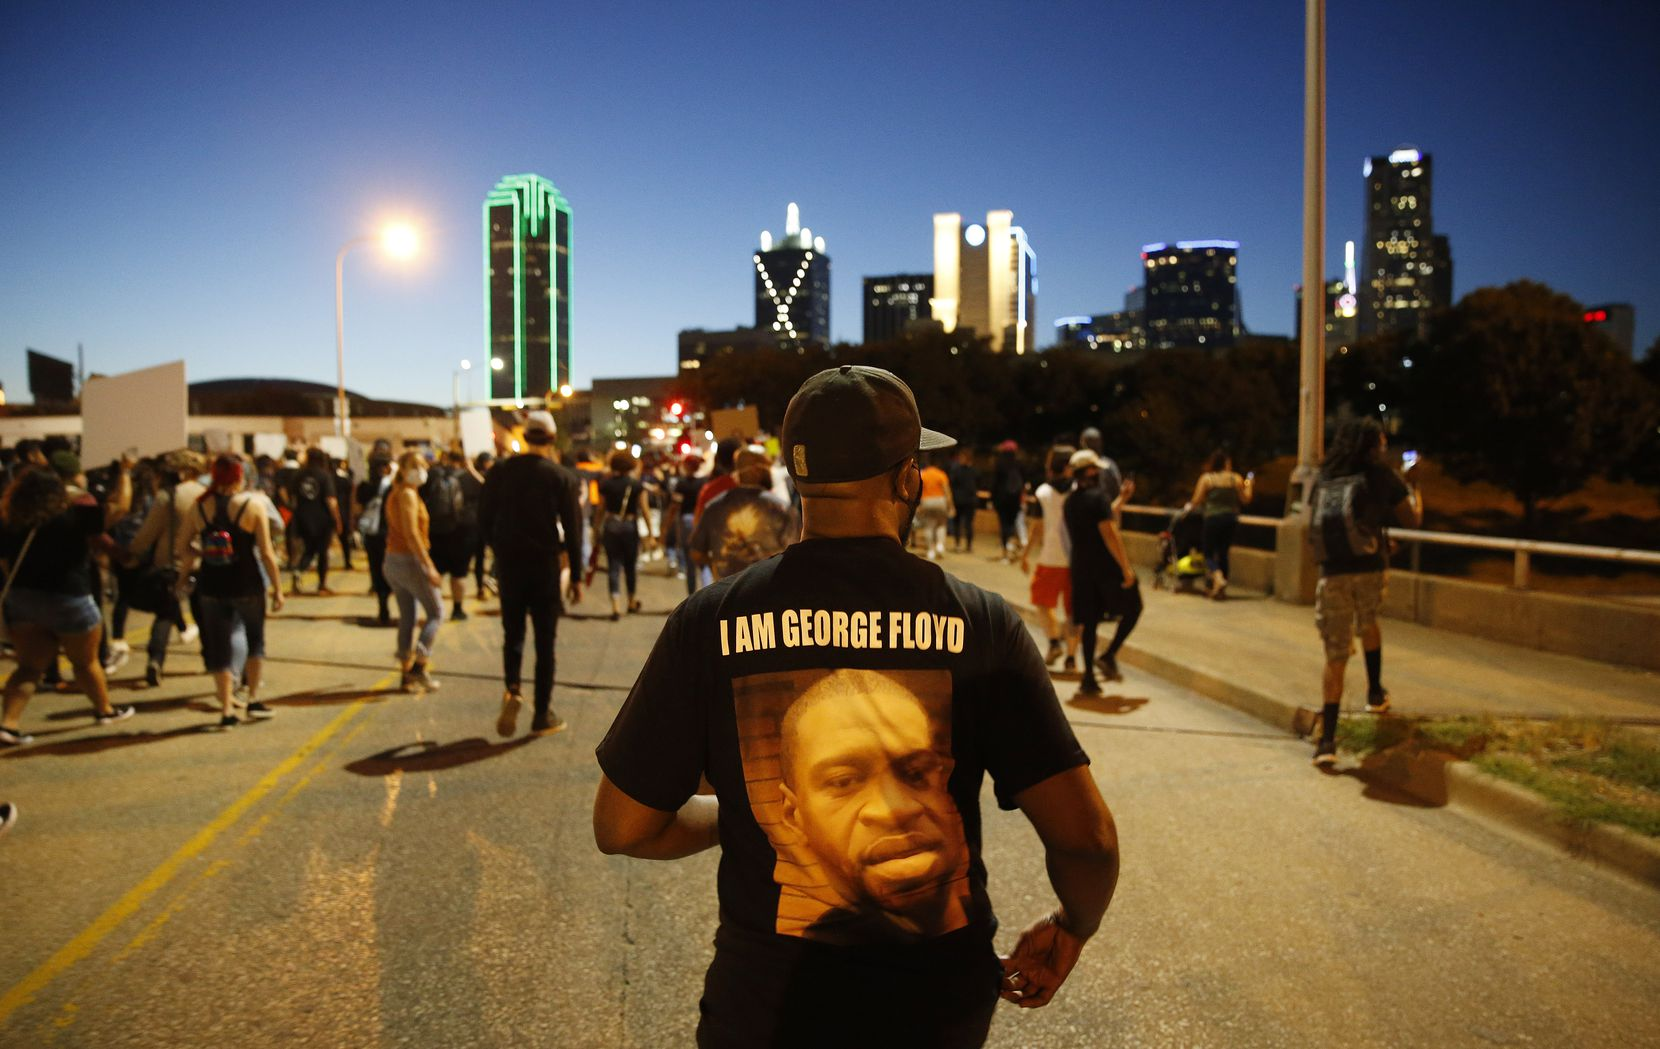 Protesters march during a demonstration against police brutality in downtown Dallas, on Friday, May 29, 2020. George Floyd died in police custody in Minneapolis on May 25.